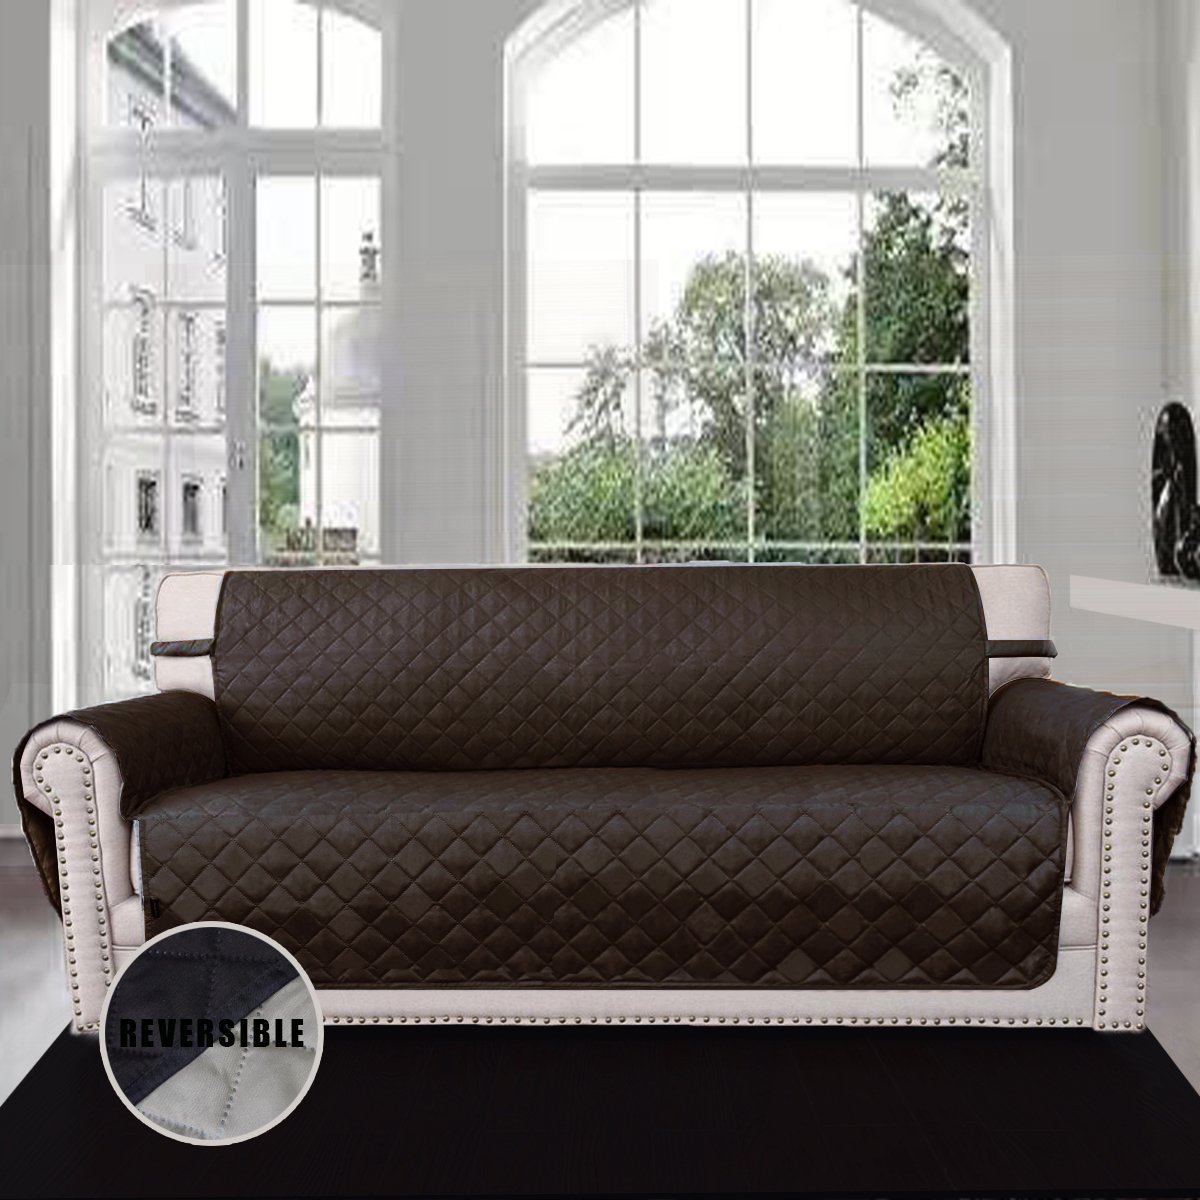 Details about 3 Seater Sofa Cover Set Reversible Covers Pet / dog / cat  Protector Slipcover